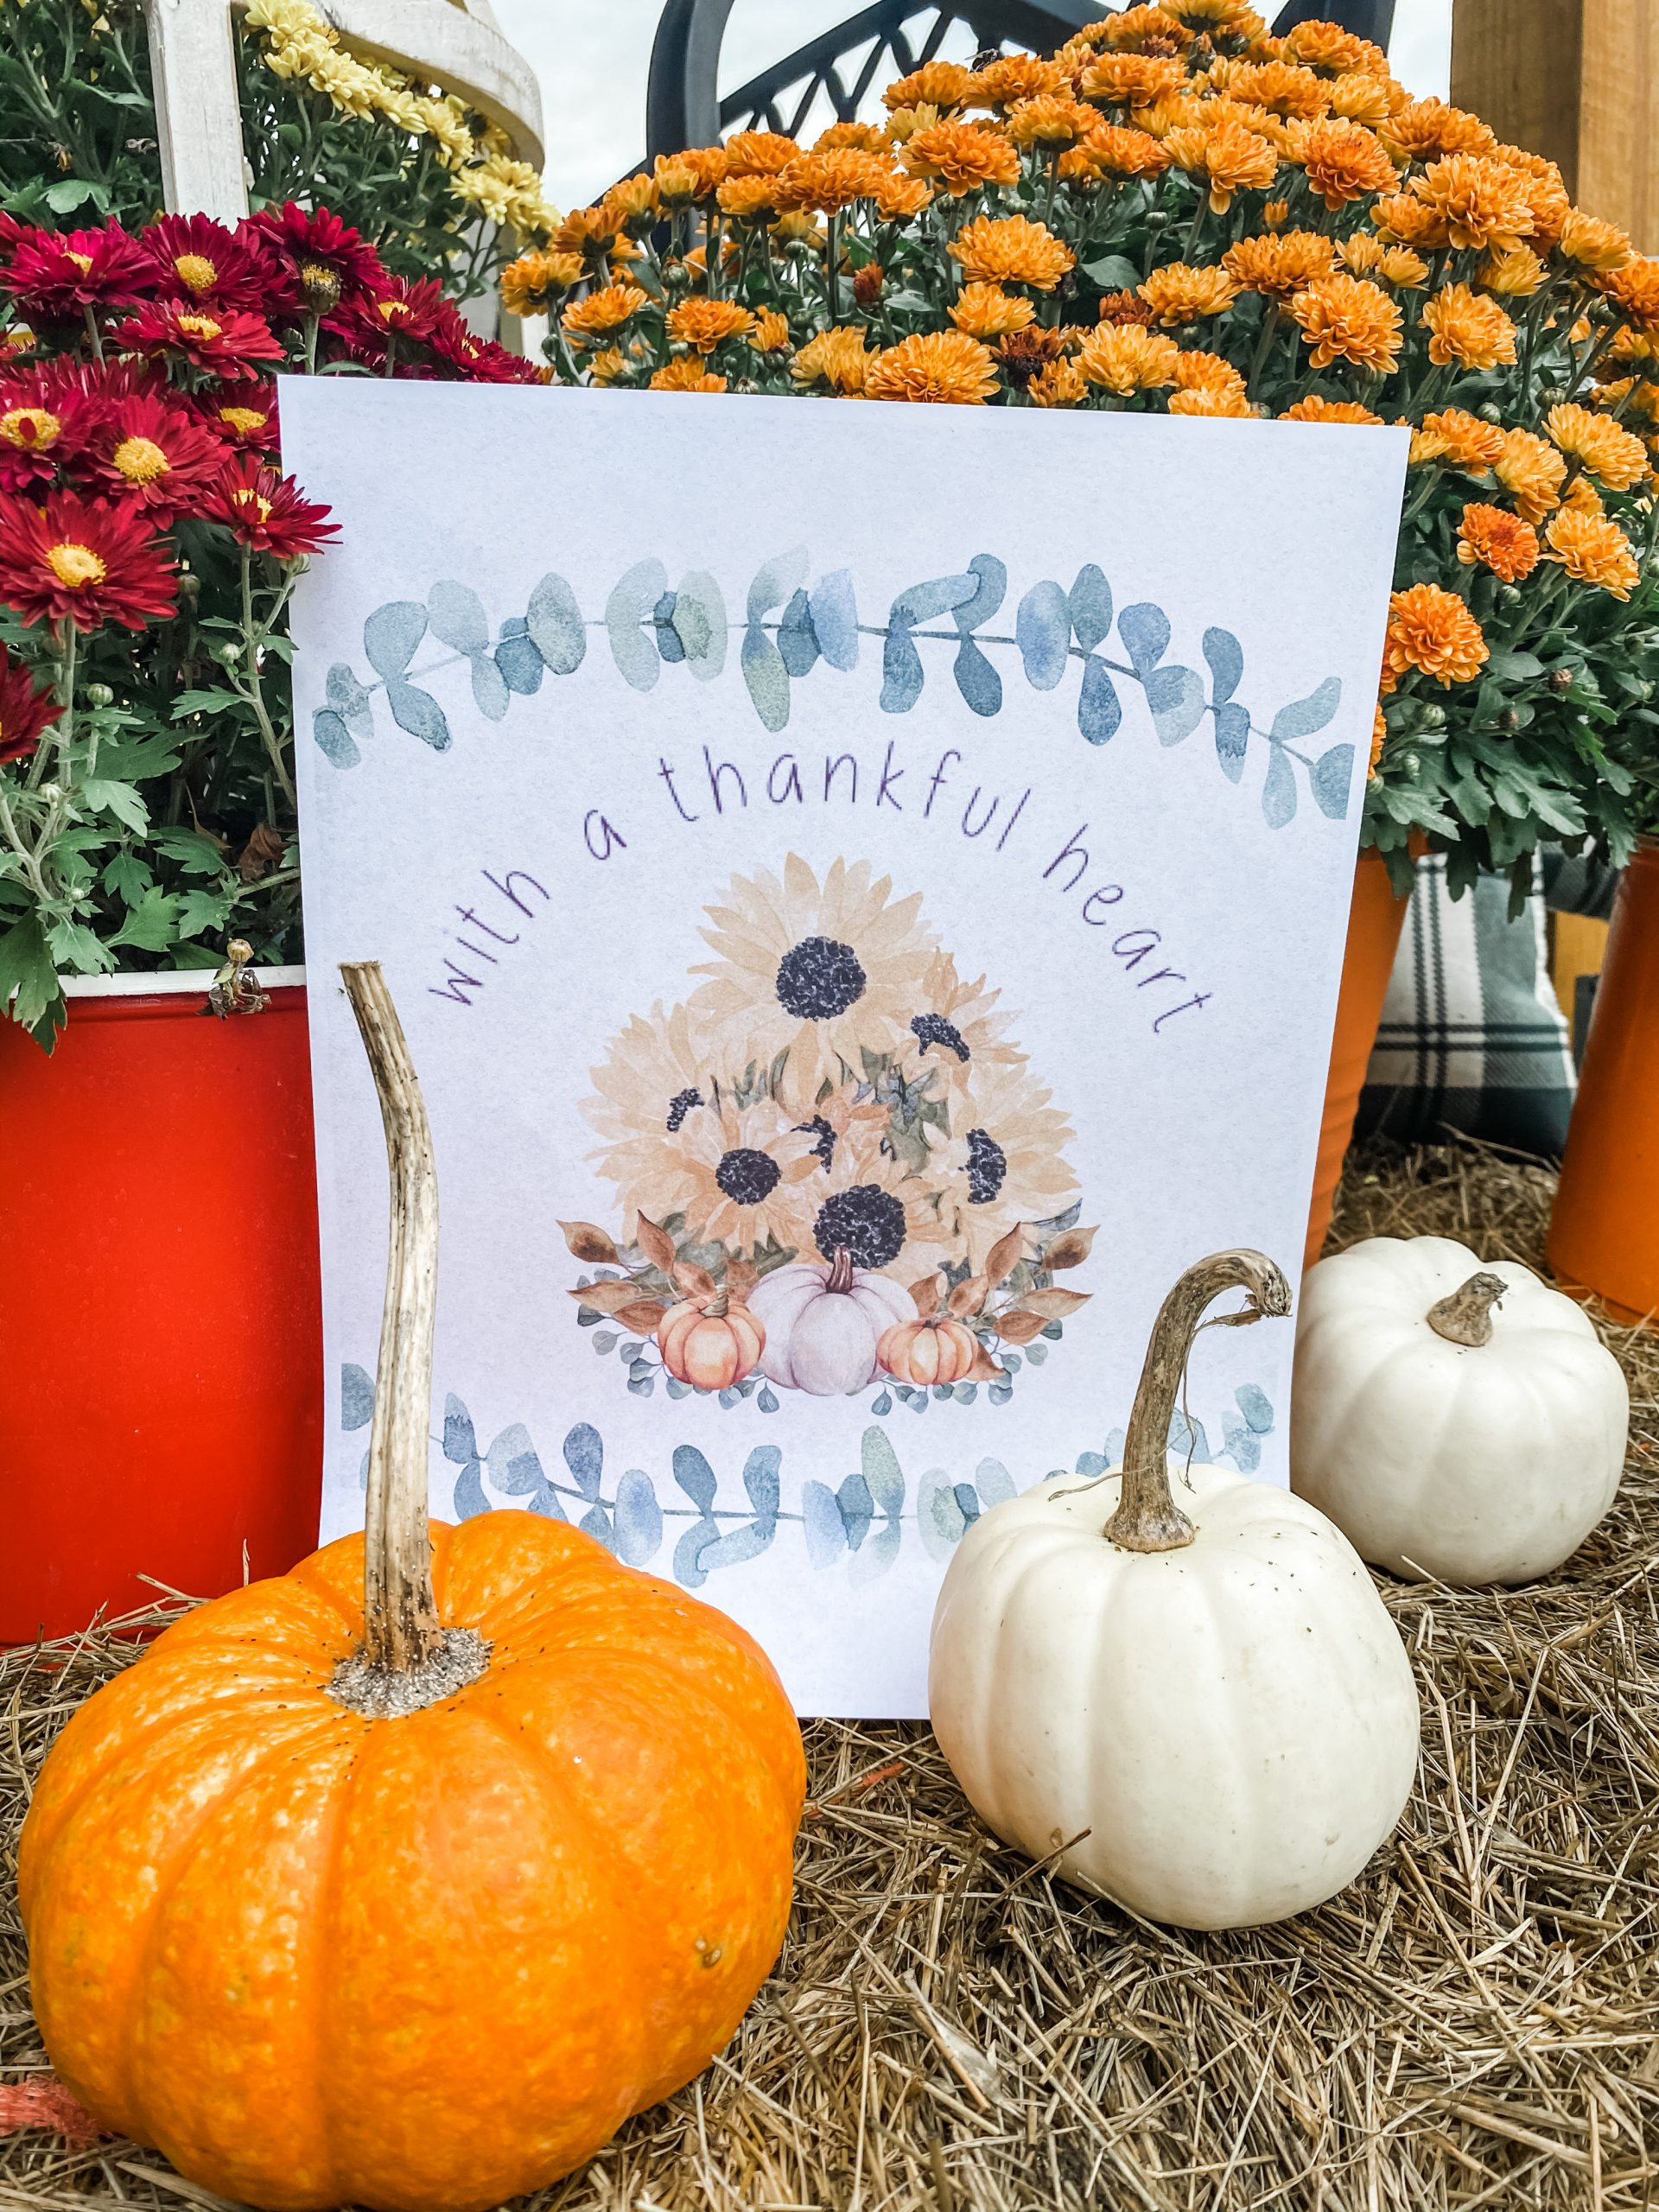 Friendsgiving Free Printables with a thankful heart sunflower